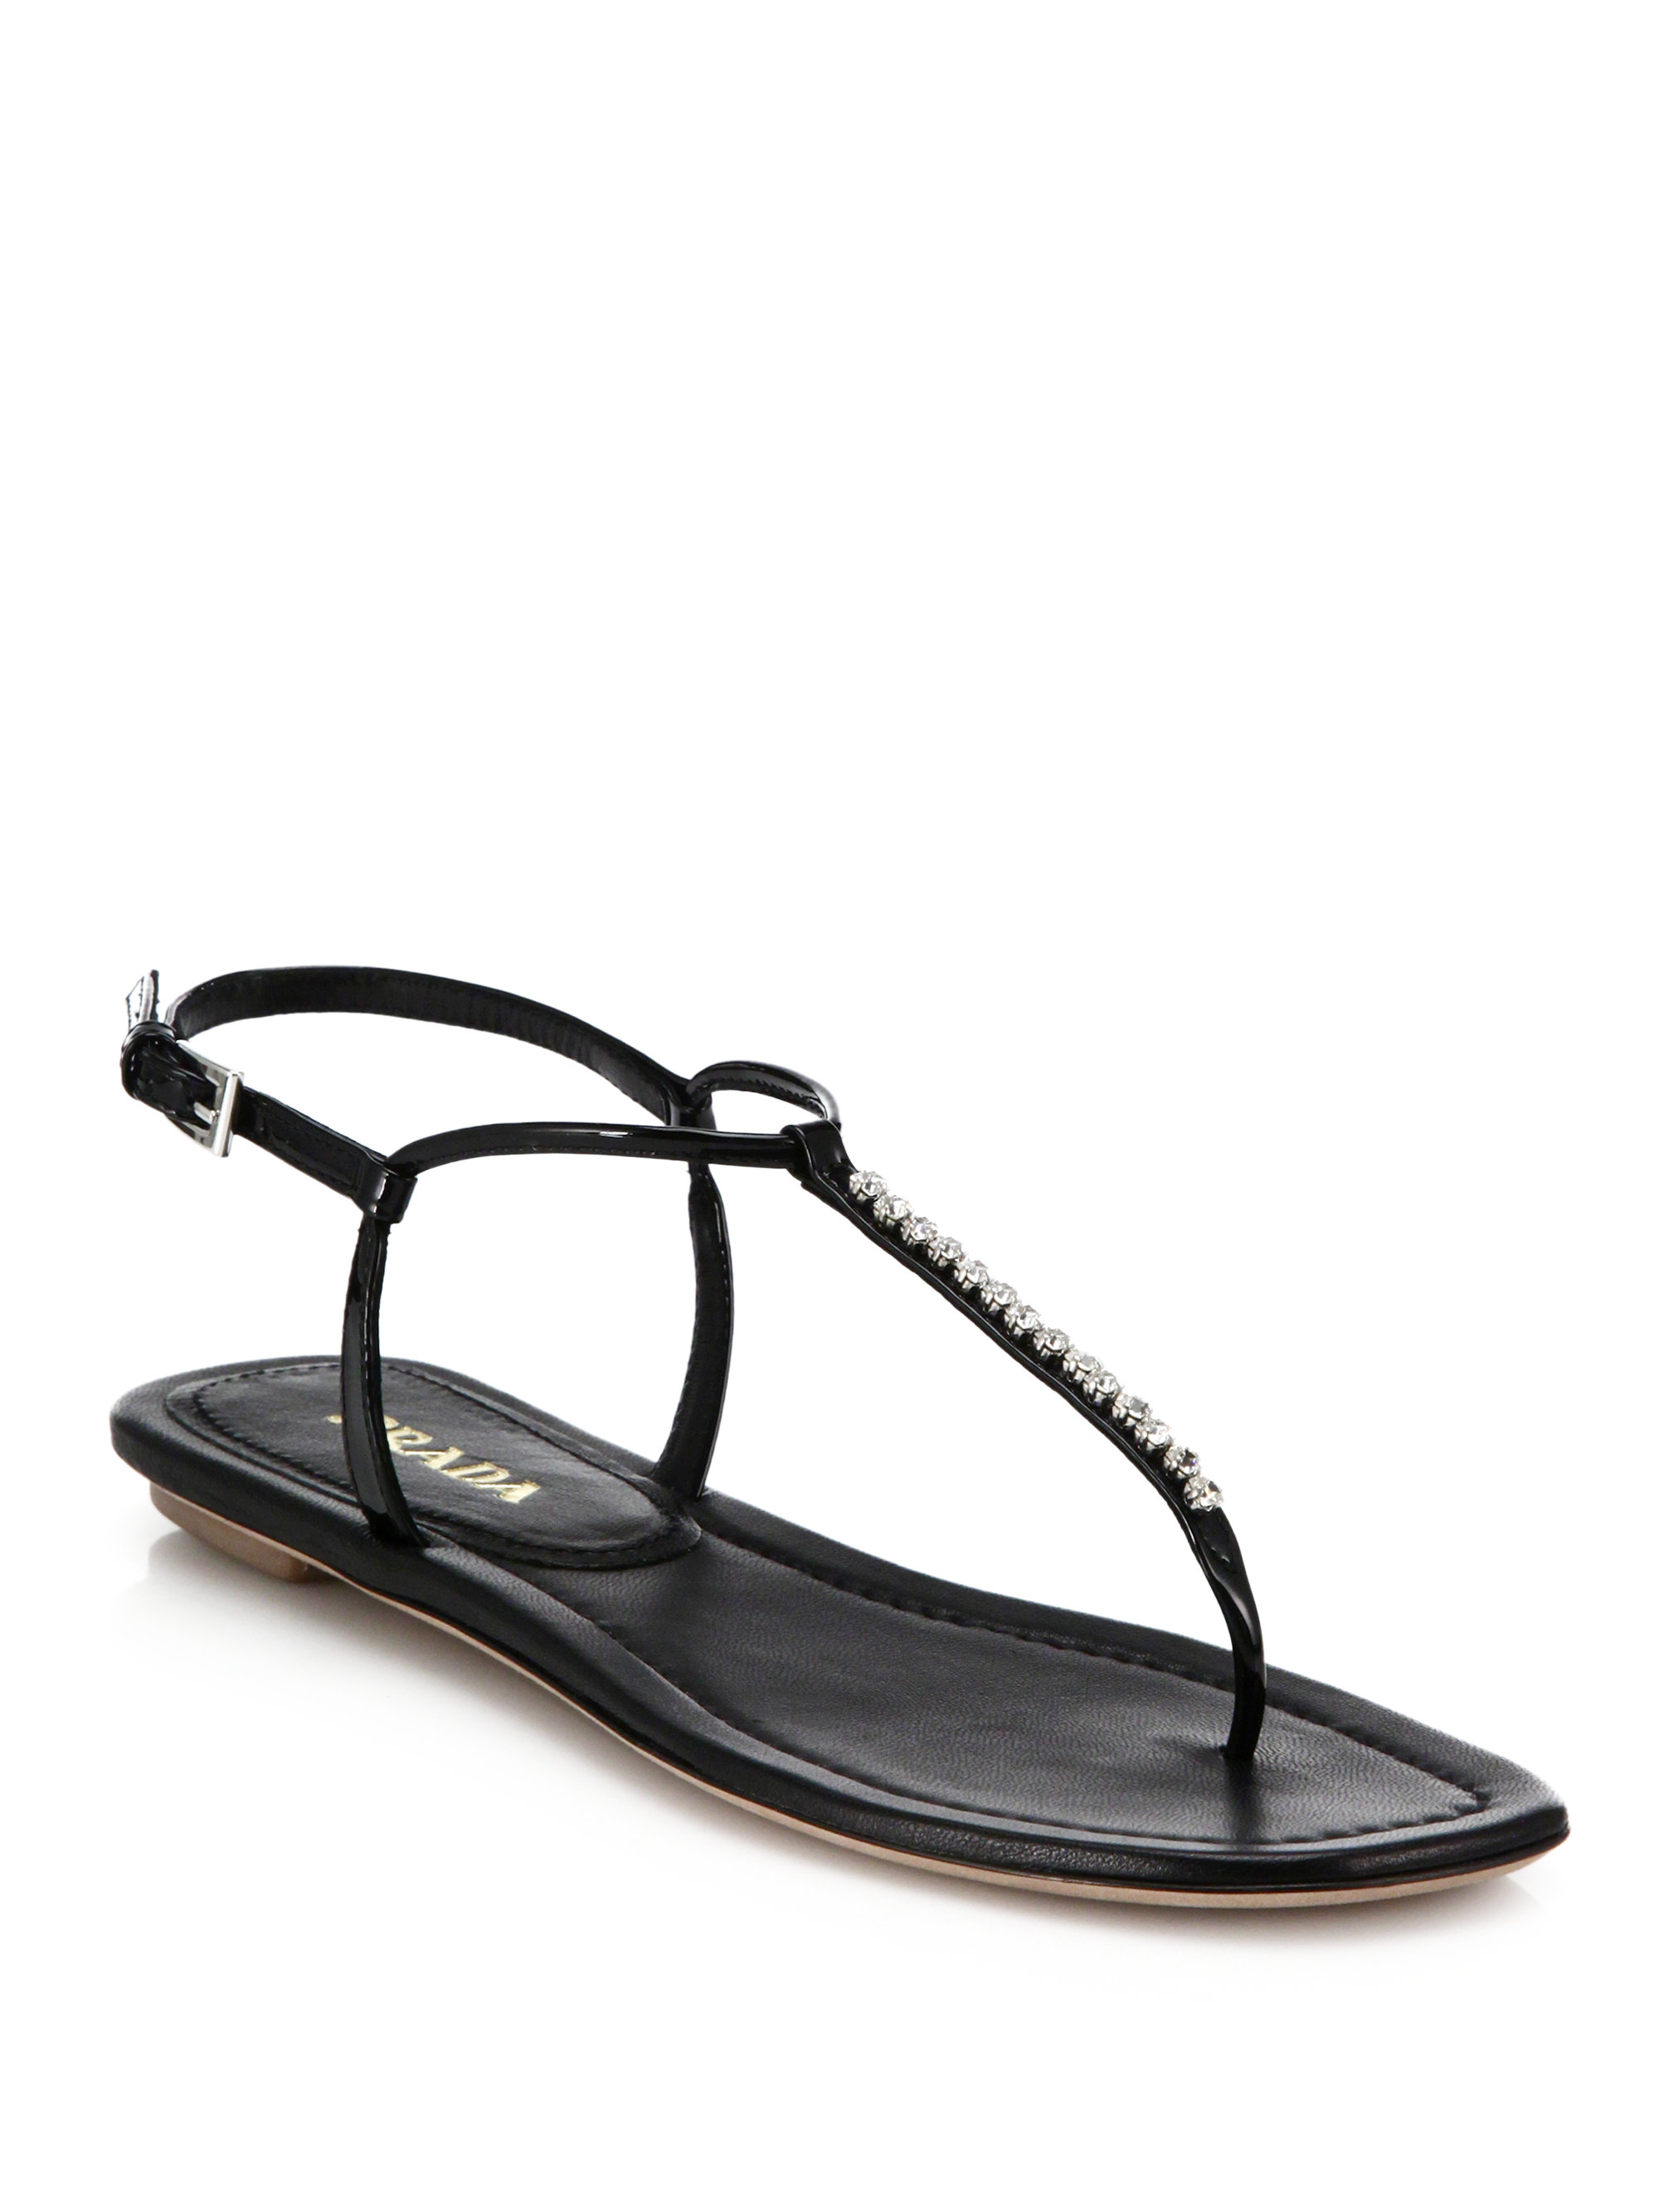 Lyst Prada Swarovski Crystal Flat Leather Sandals In Black